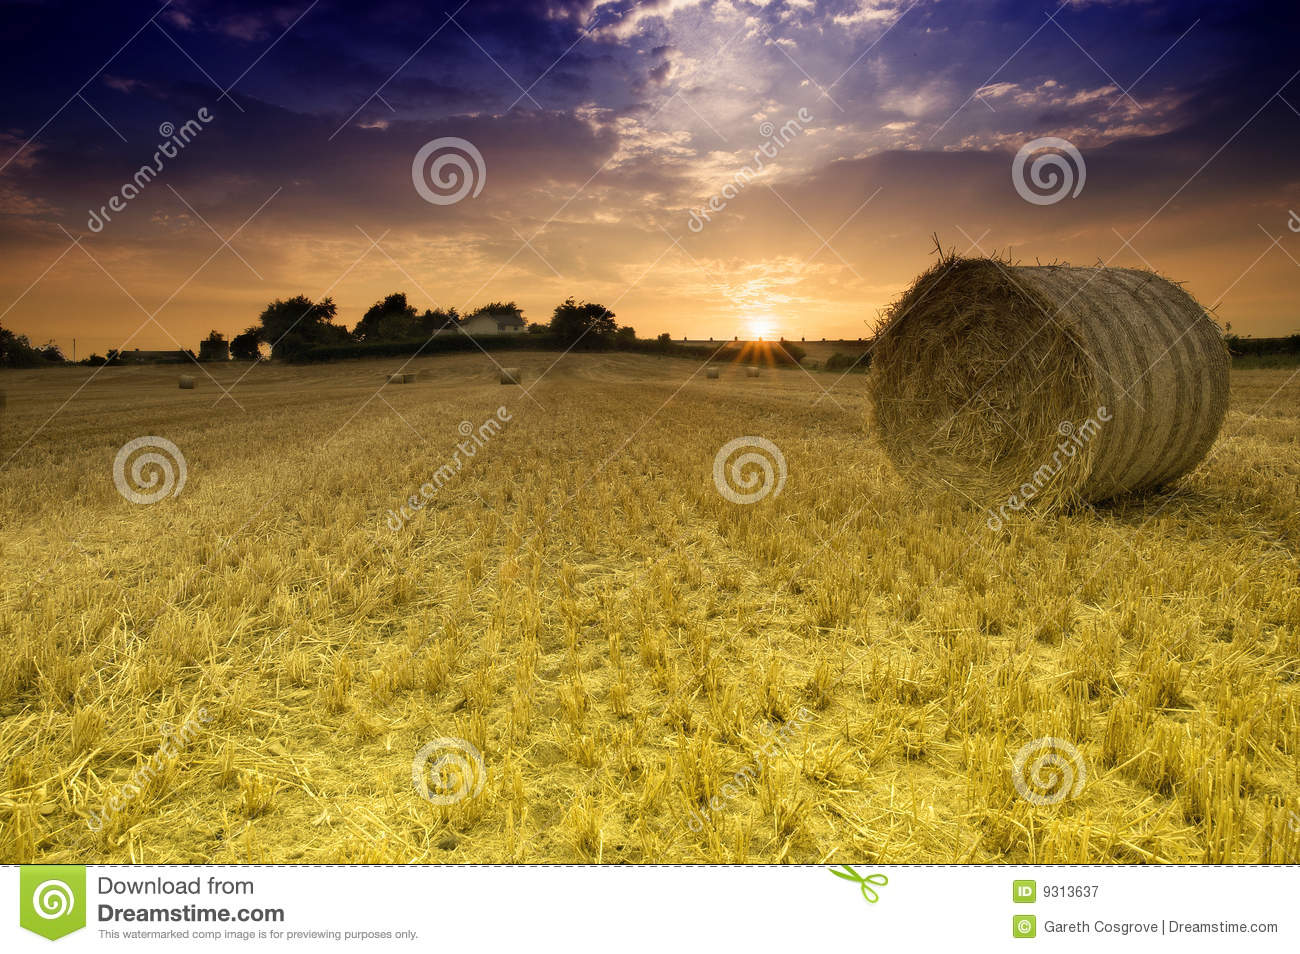 Field with Bales of Straw